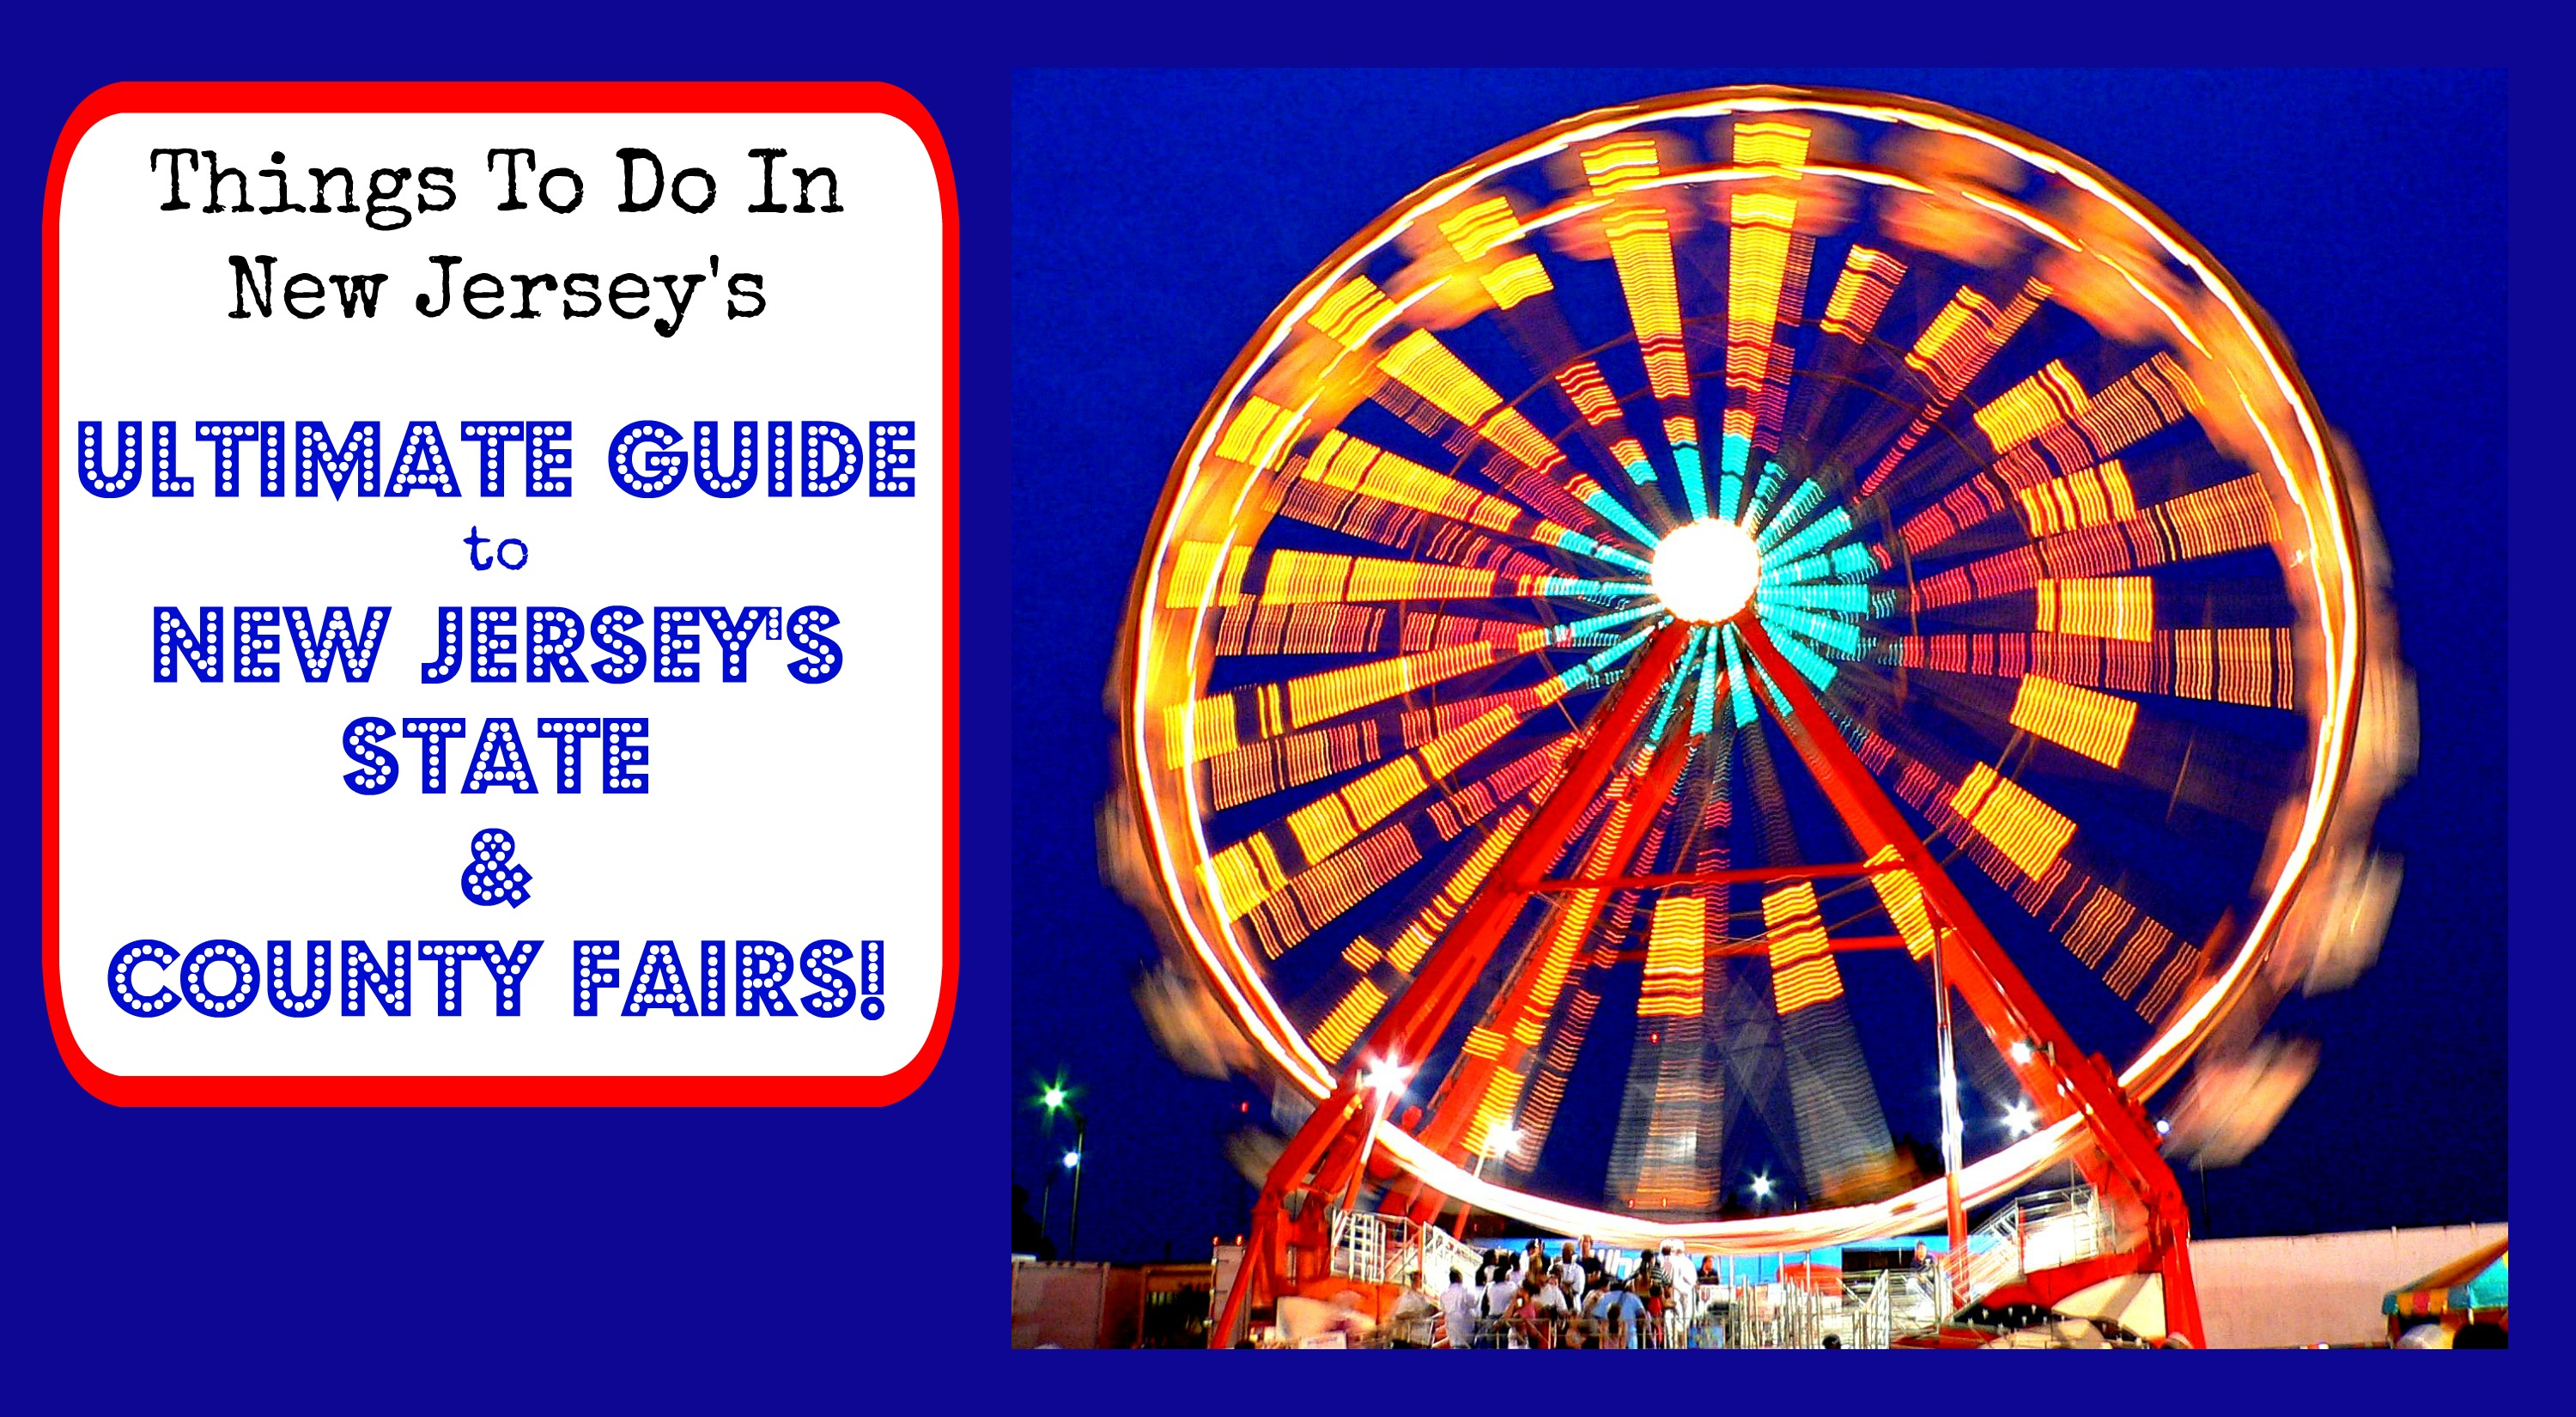 County Fairs In New Jersey